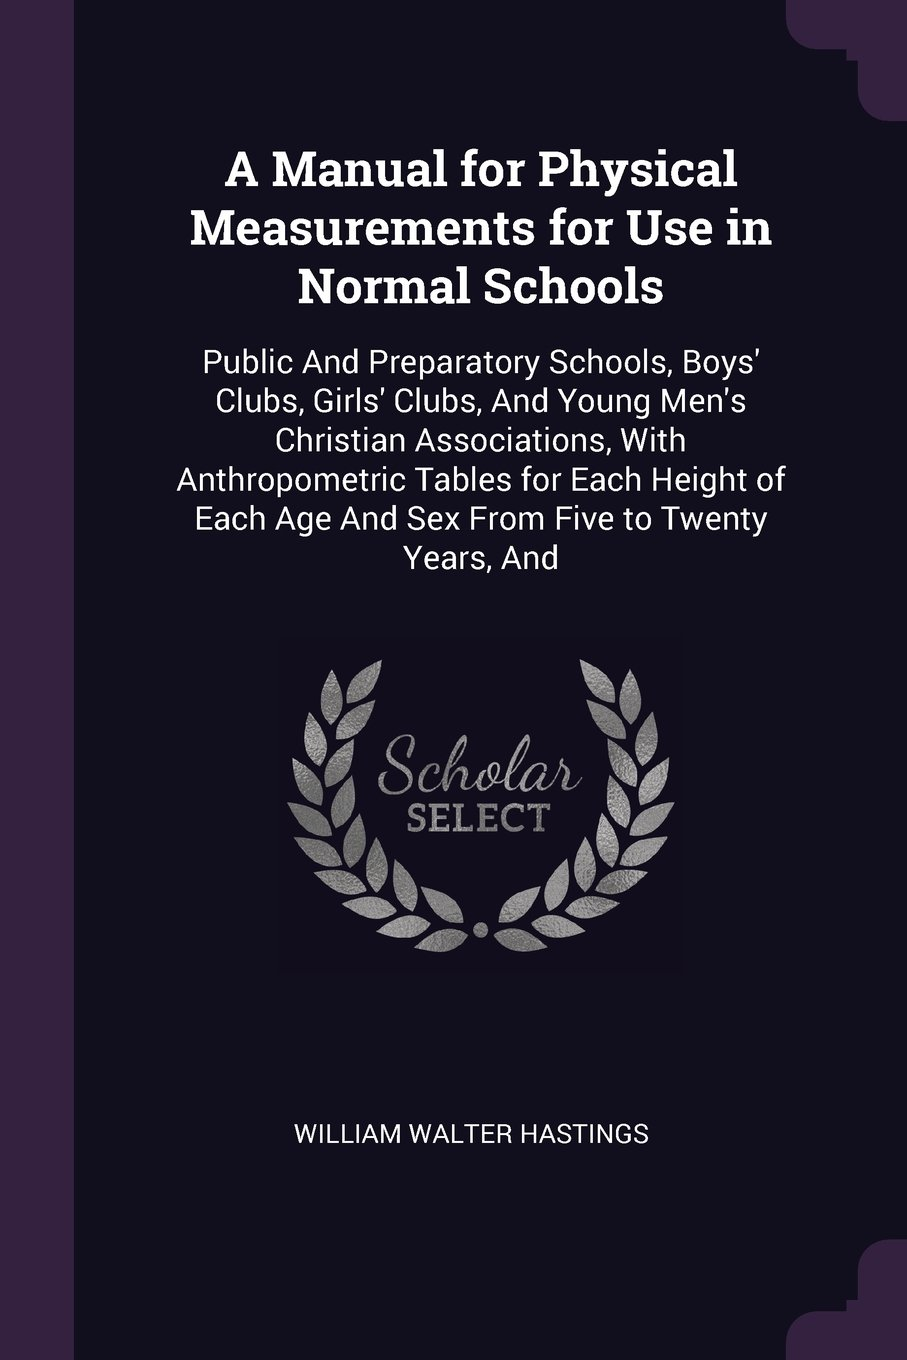 Download A Manual for Physical Measurements for Use in Normal Schools: Public And Preparatory Schools, Boys' Clubs, Girls' Clubs, And Young Men's Christian ... Age And Sex From Five to Twenty Years, And pdf